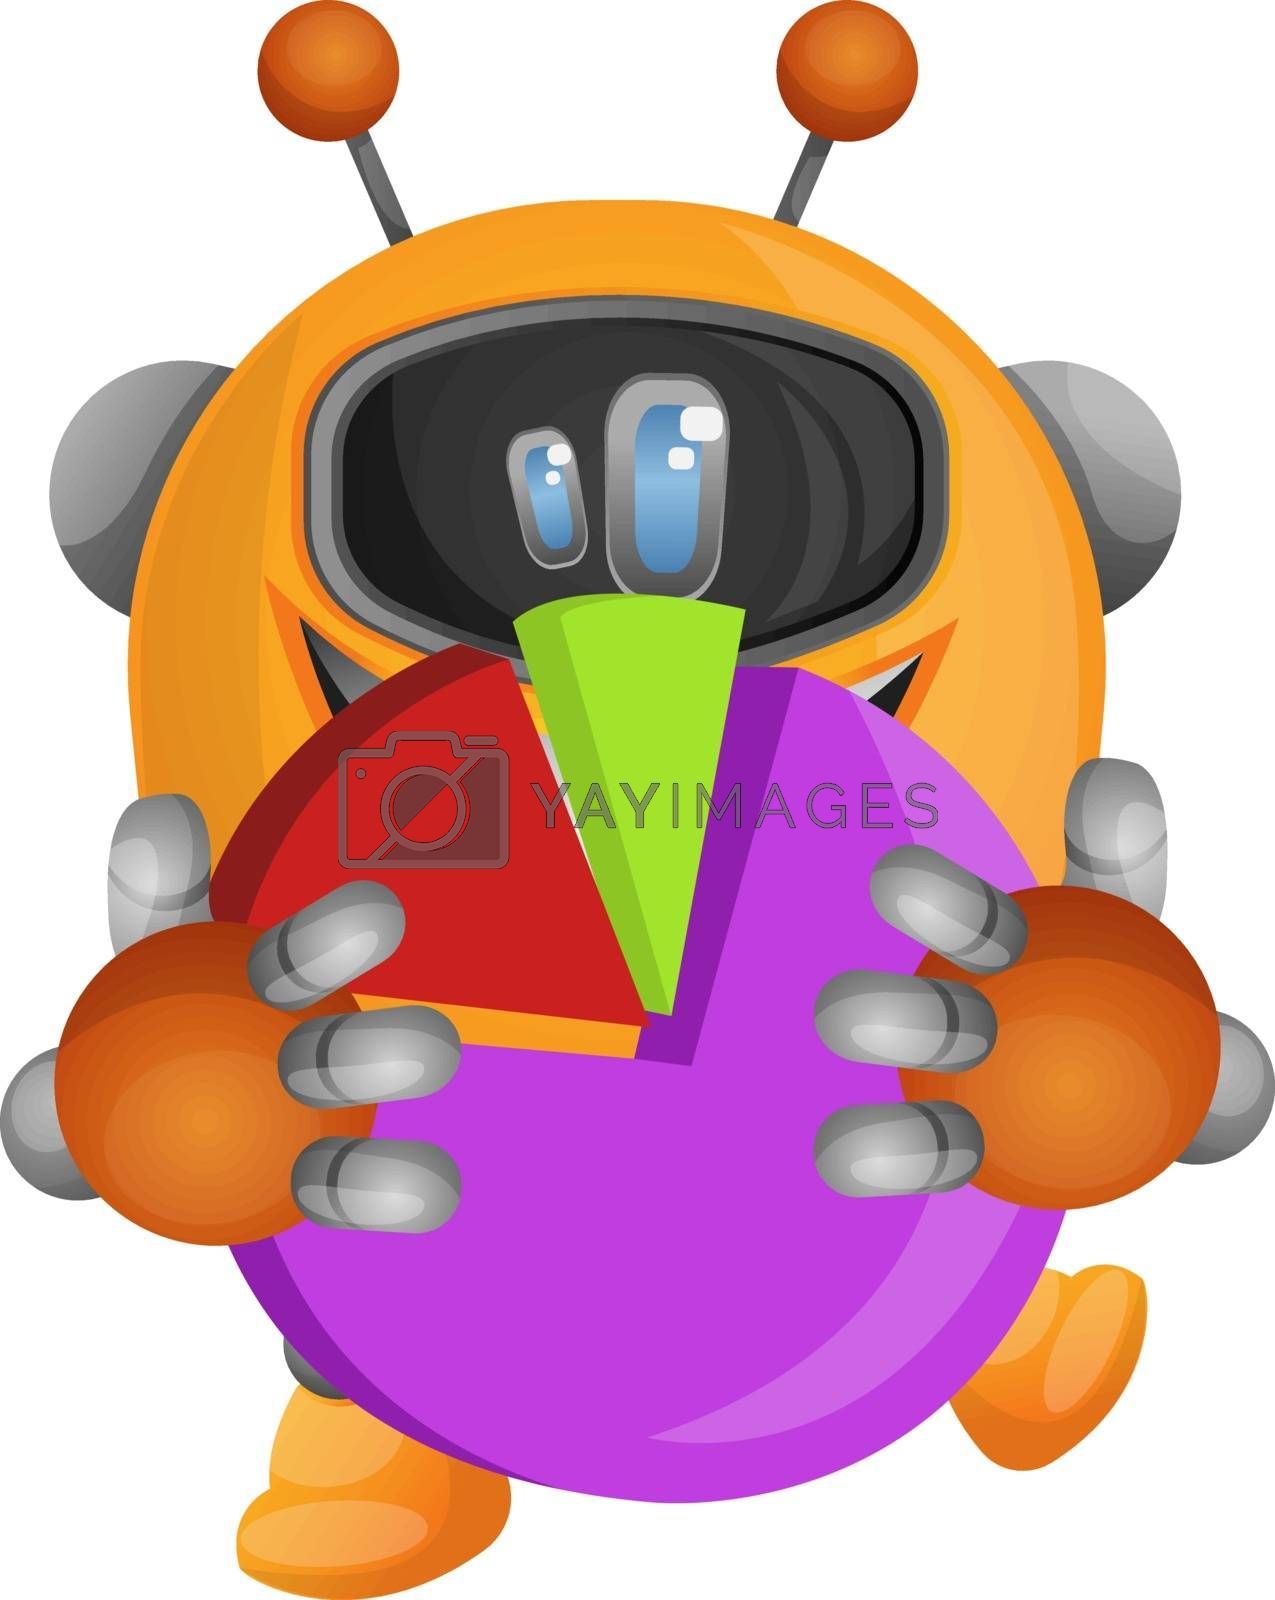 Royalty free image of Cartoon robot holding a pie chart illustration vector on white b by Morphart